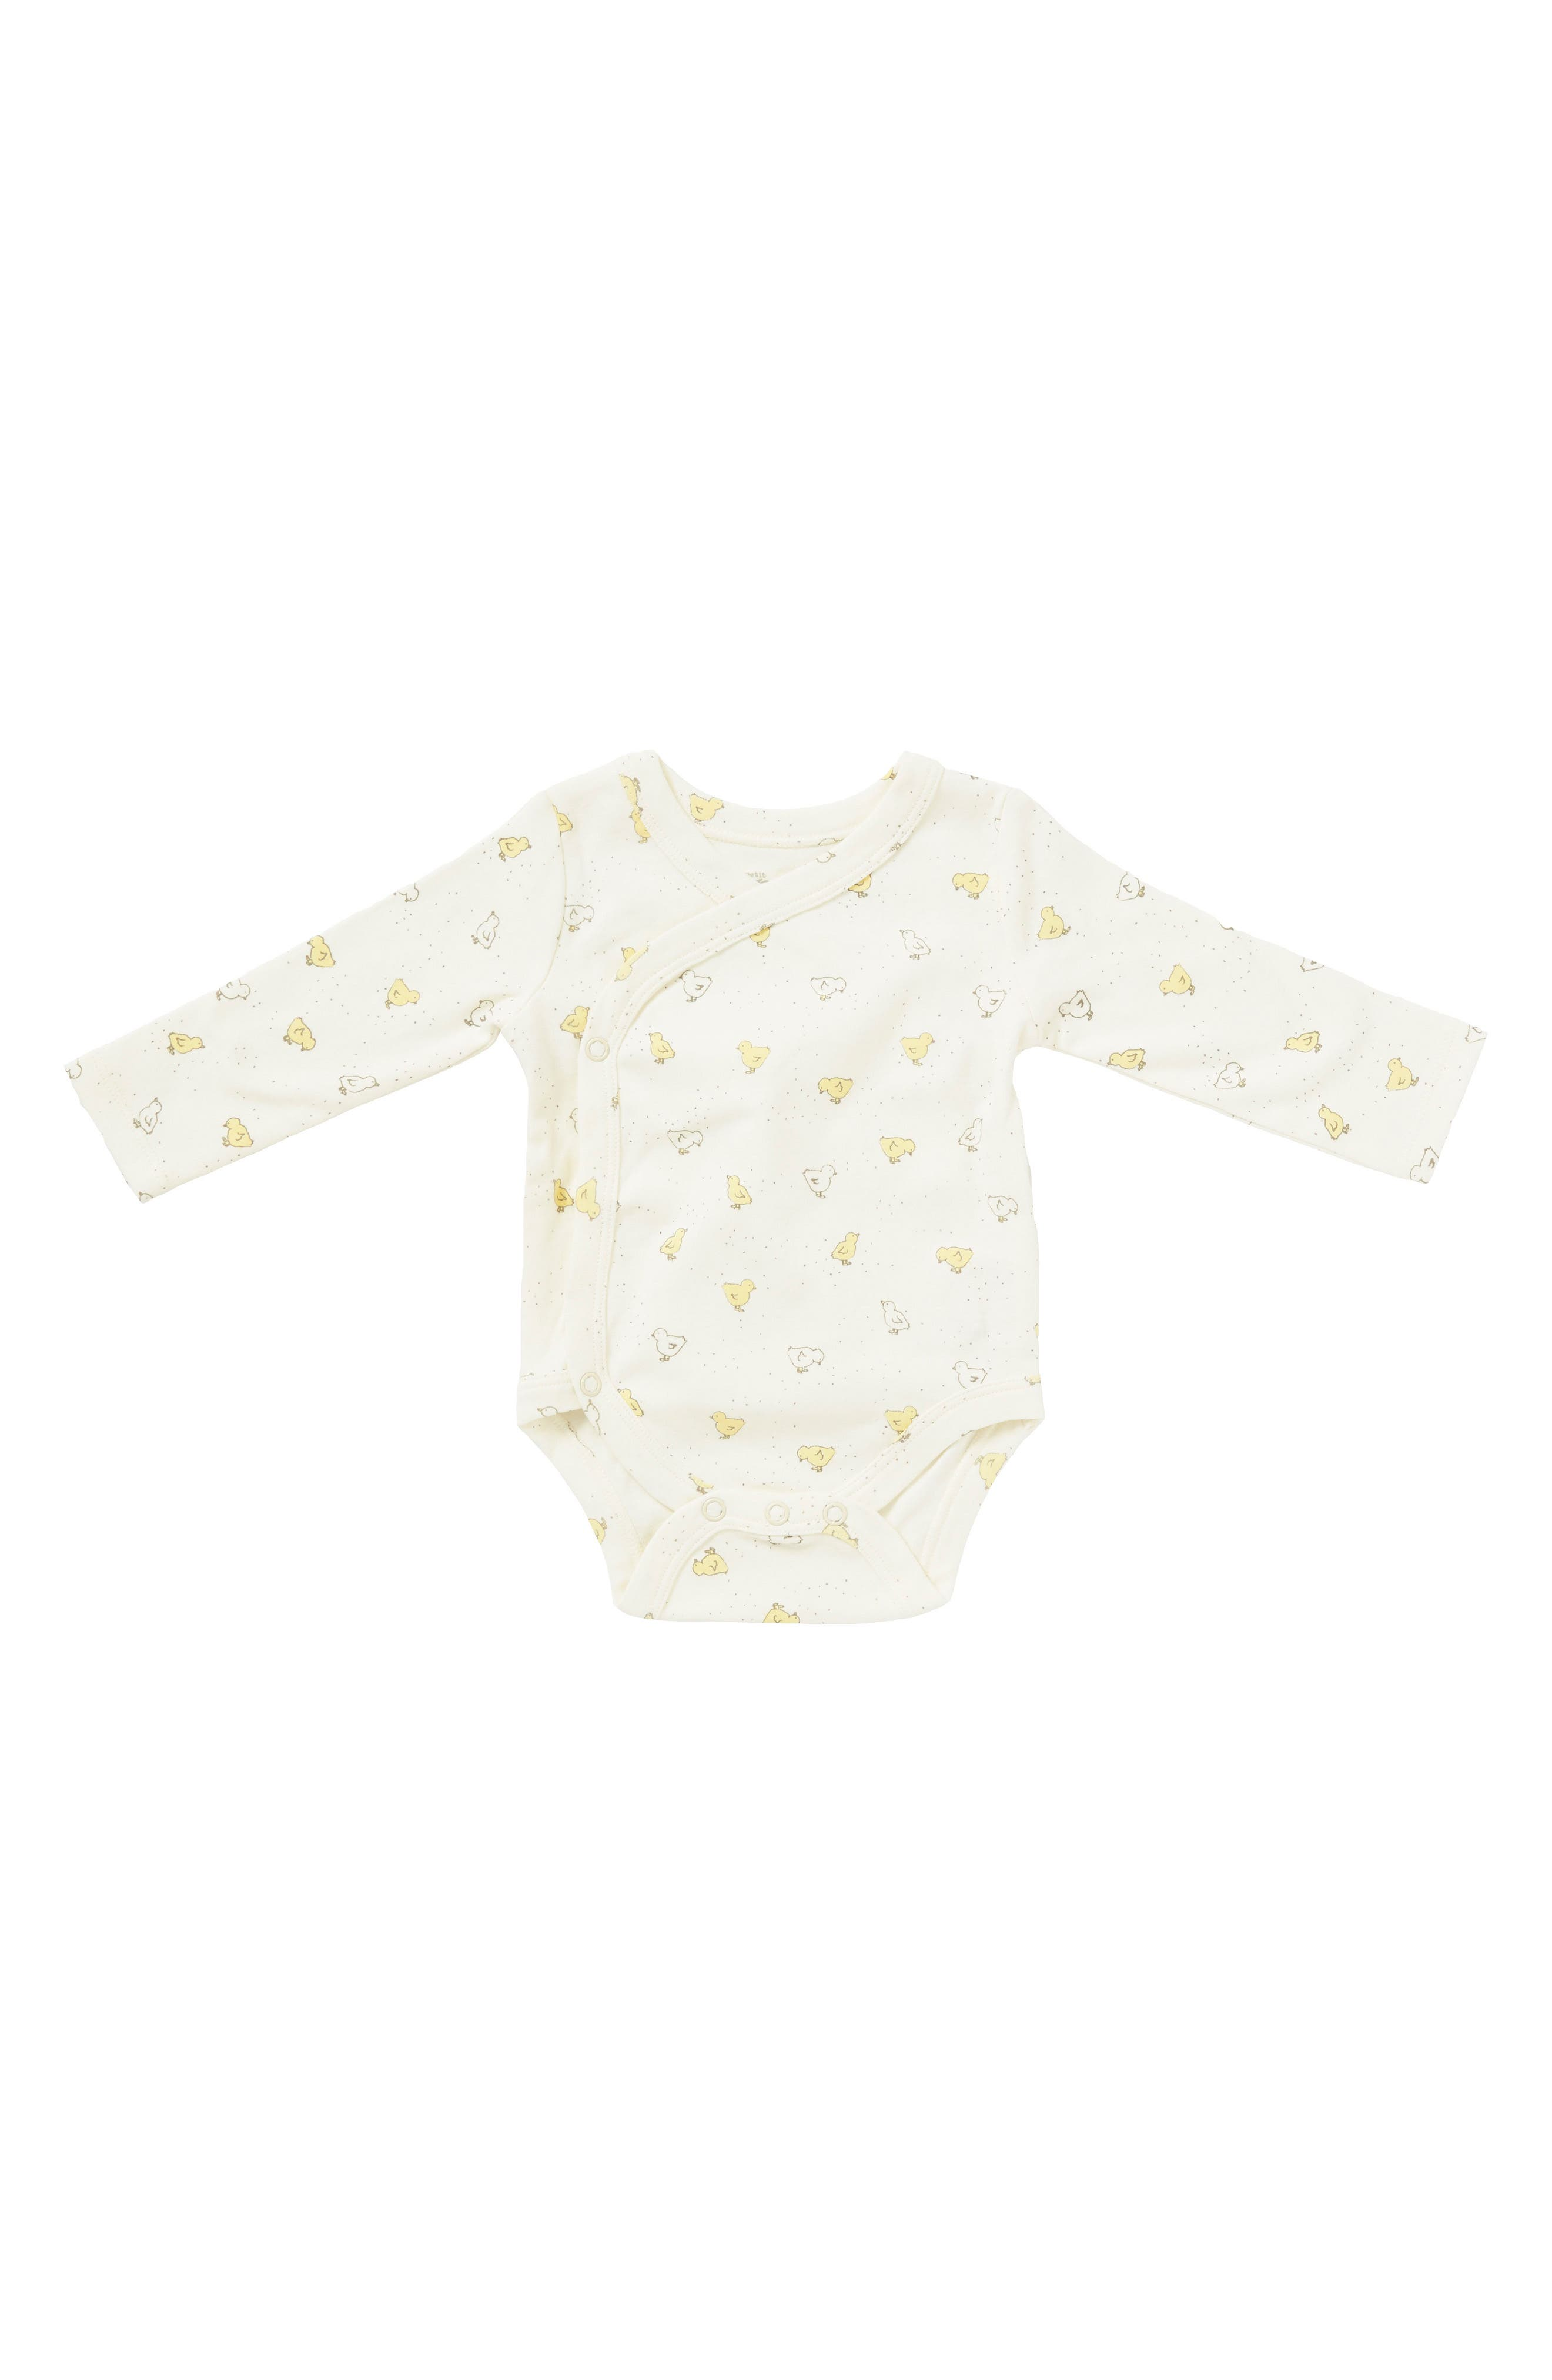 Baby Chick Bodysuit,                             Main thumbnail 1, color,                             900